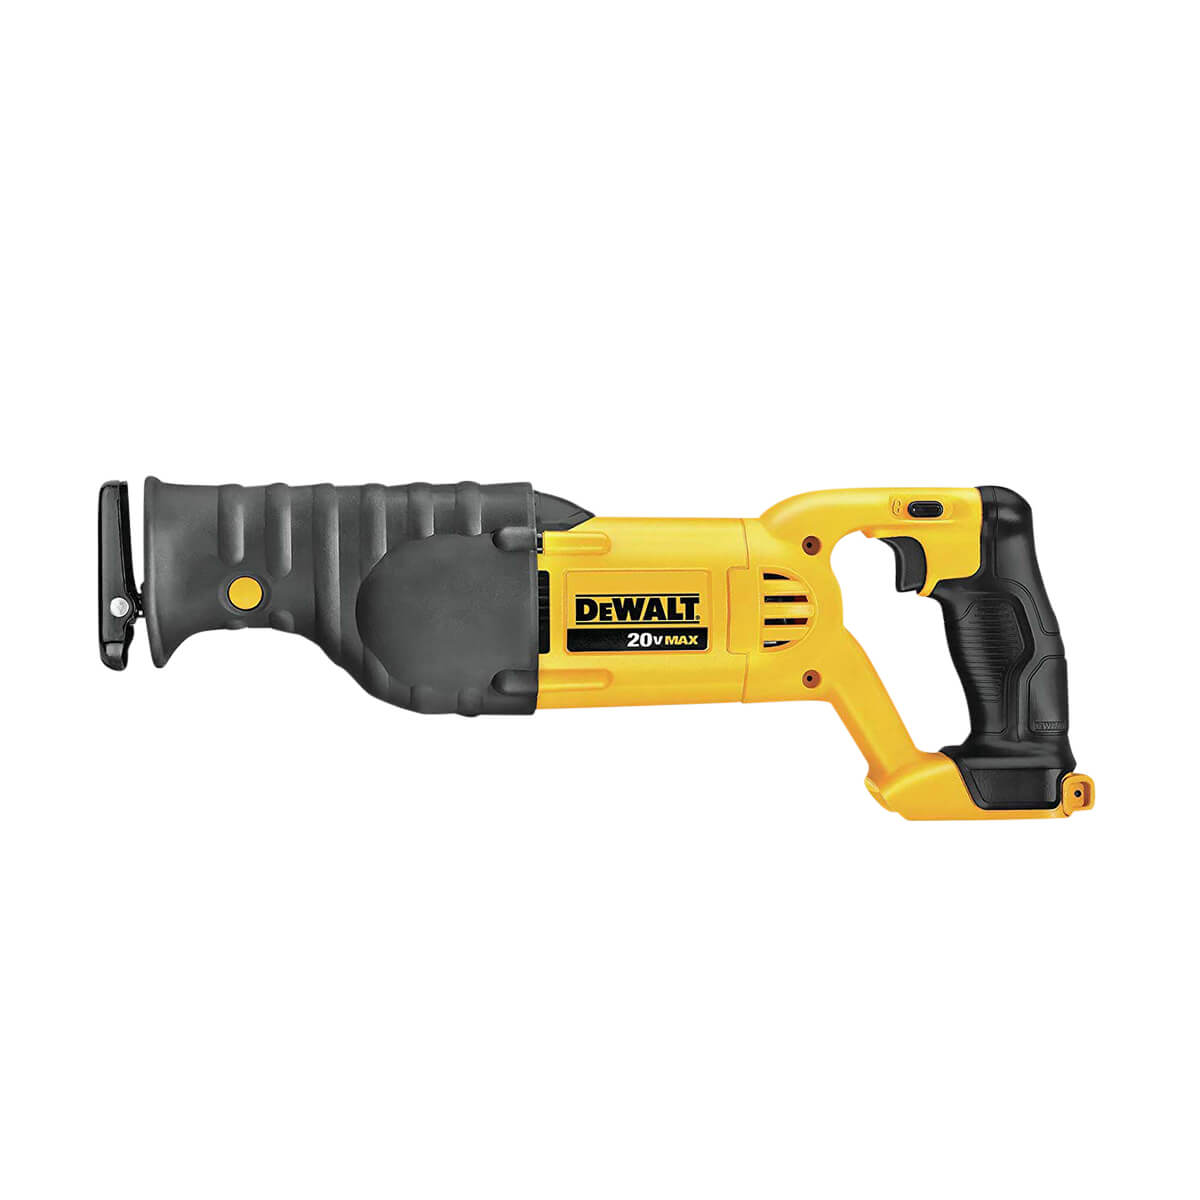 DEWALT DCS380B 20V Max Reciprocating Saw